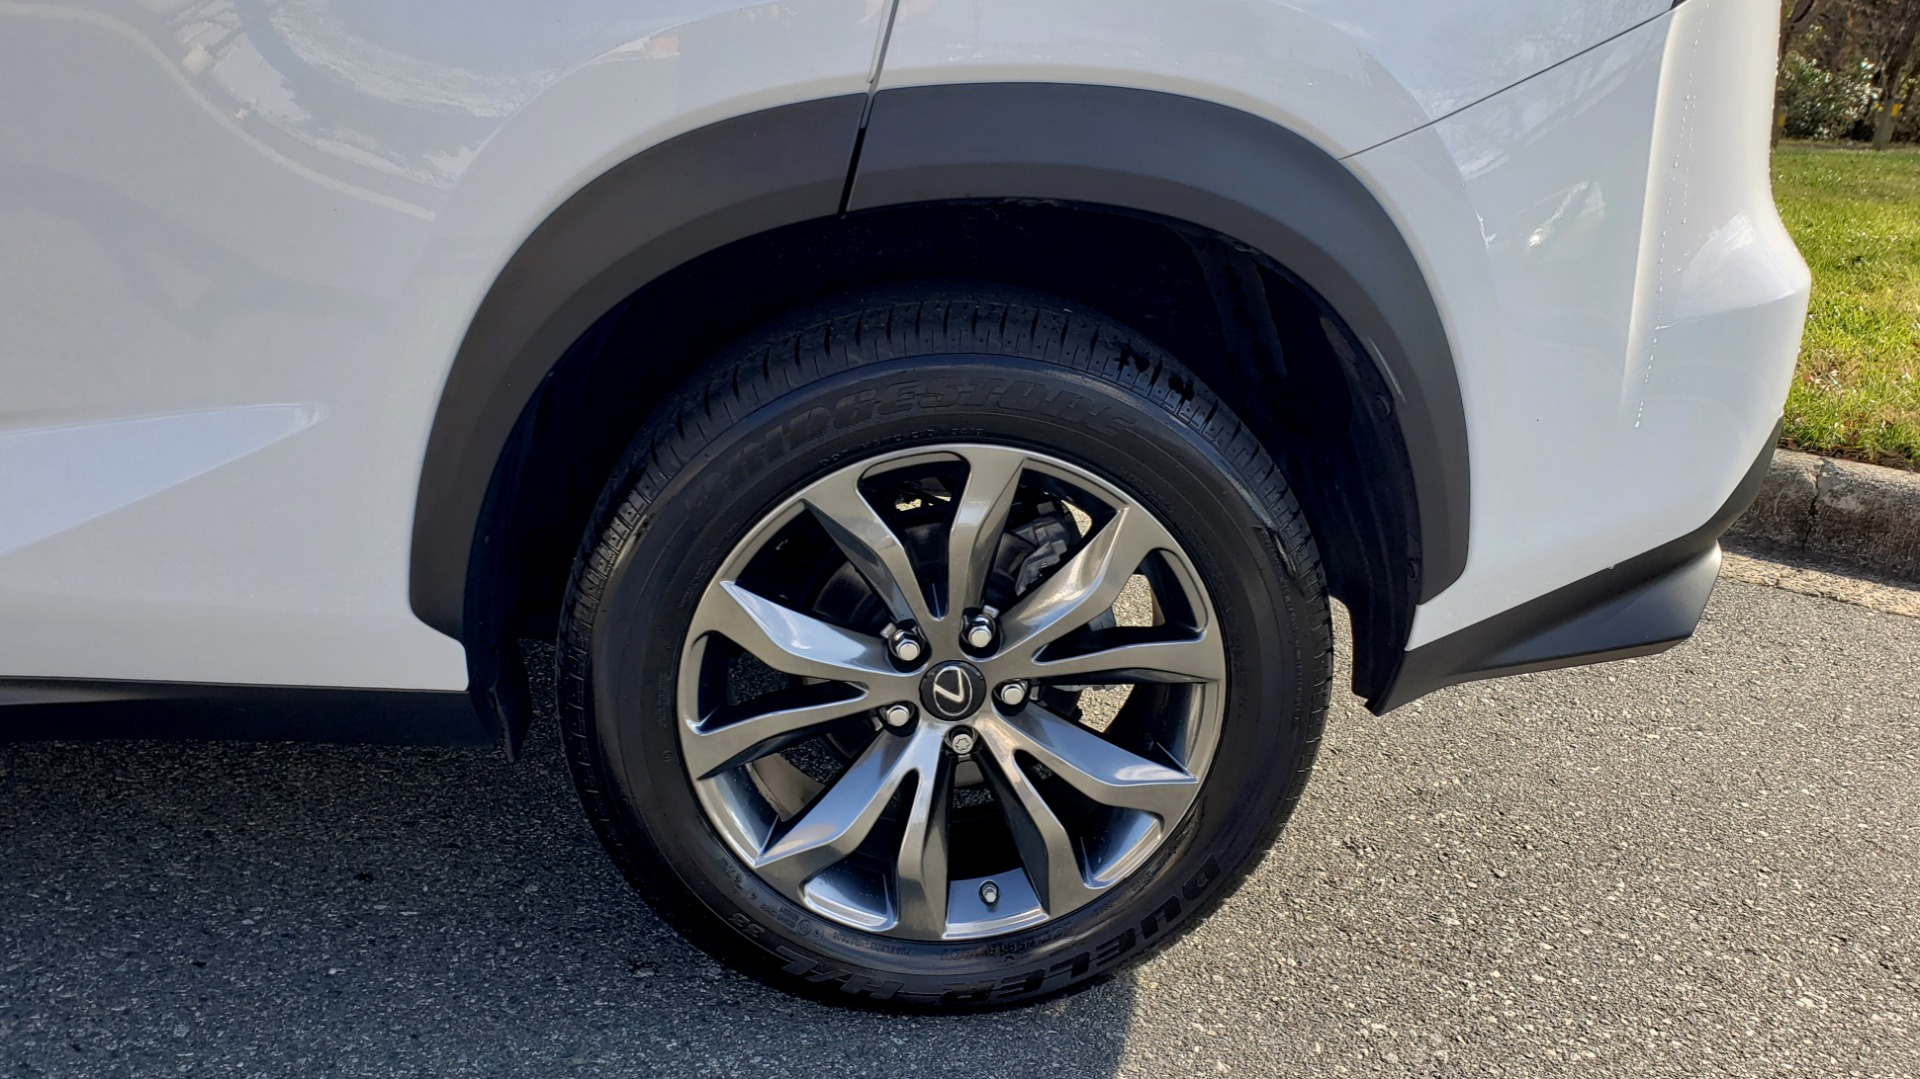 Used 2019 Lexus NX 300 F-SPORT / 2.0L TURBO / LEATHER / 18IN WHEELS / REARVIEW for sale Sold at Formula Imports in Charlotte NC 28227 83